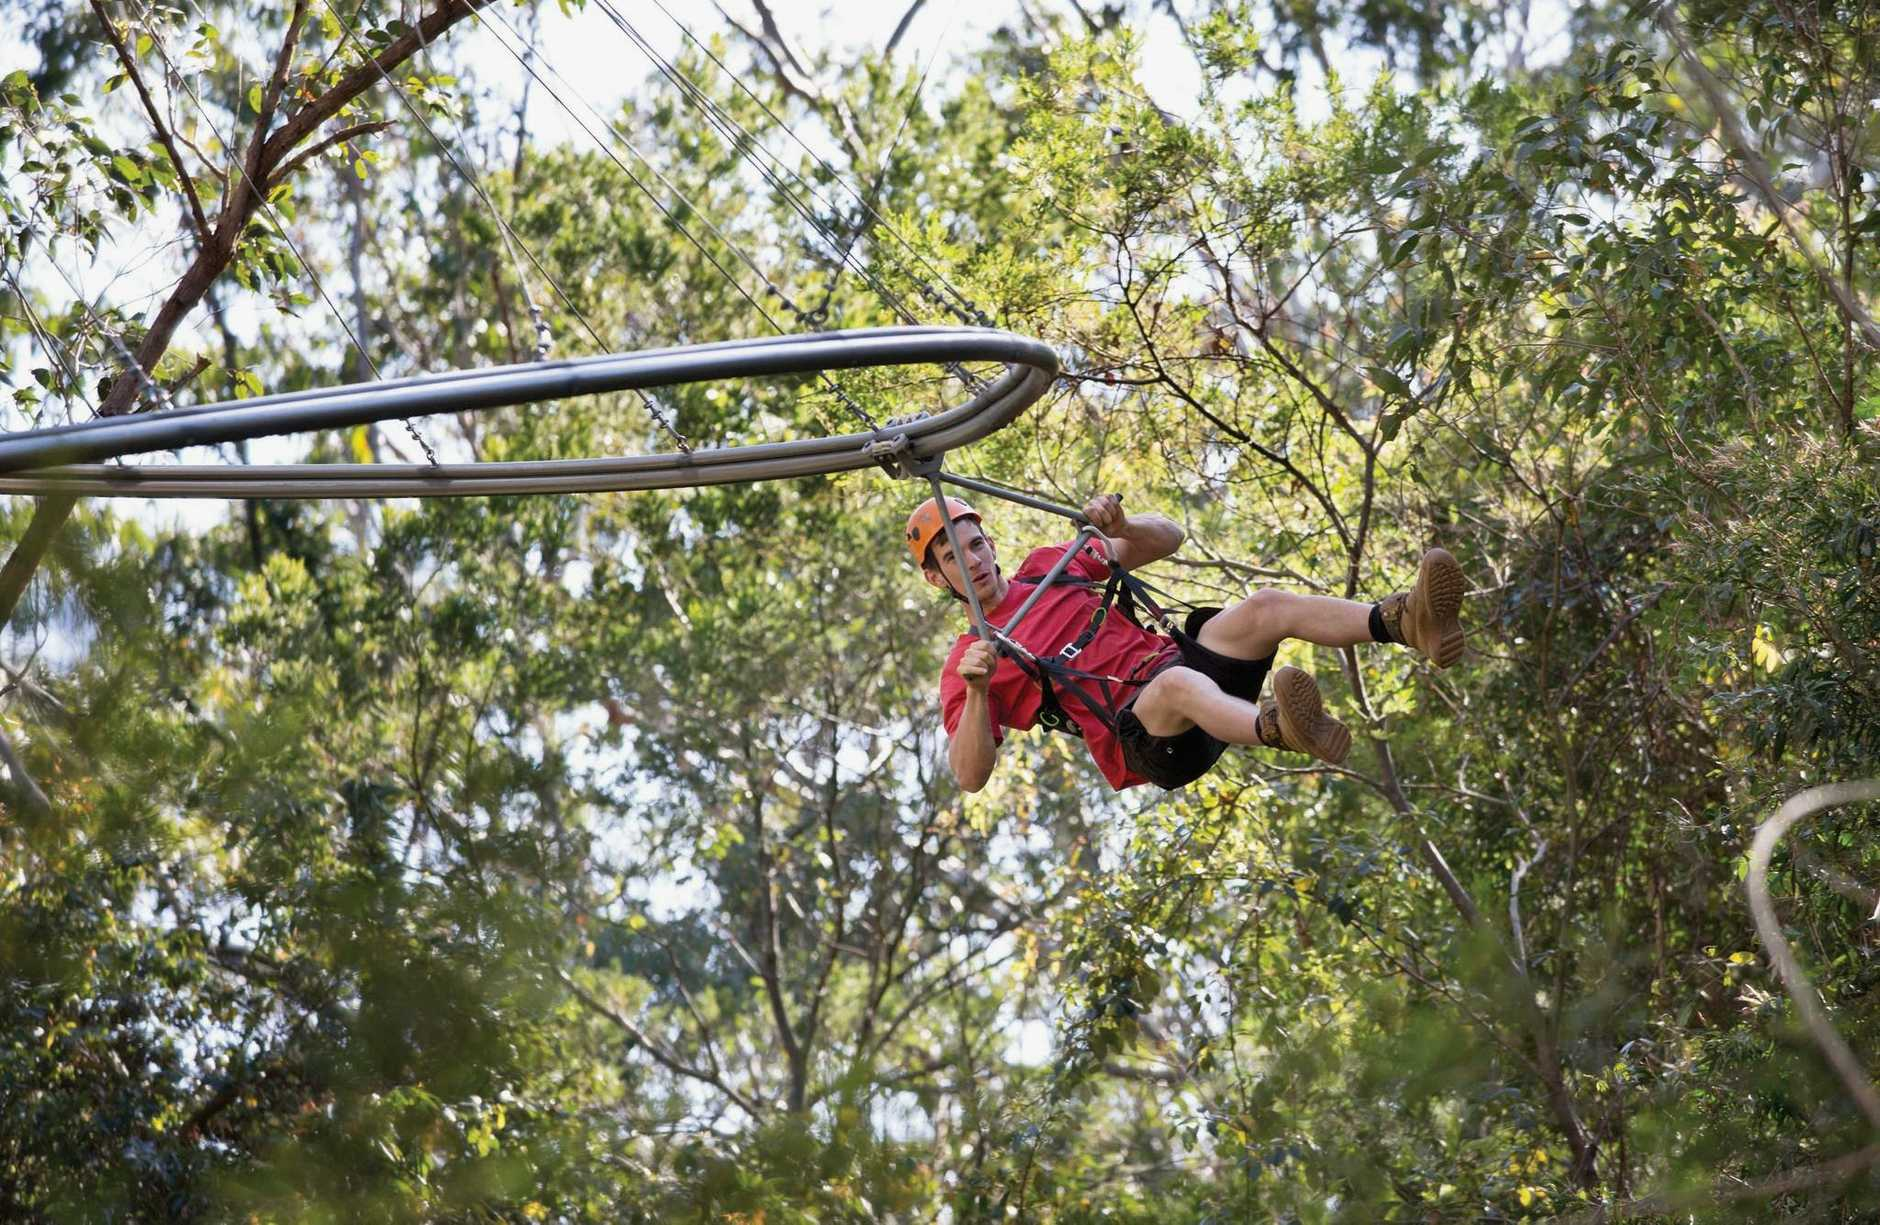 A zipline could be in the works as part of plans for the Botanic Gardens.